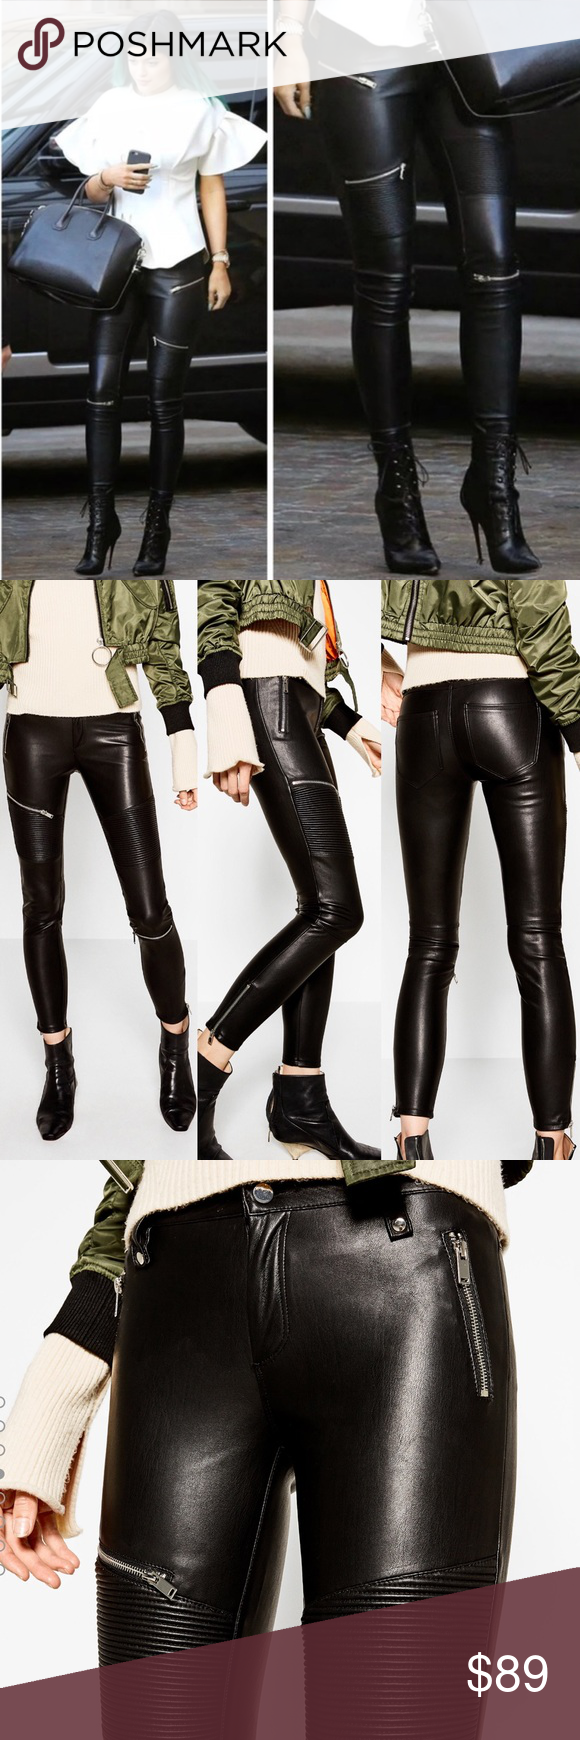 36c34990 Zara black faux leather biker moto pants with silver zippers. Fit is true  to size. Size small and medium are ...